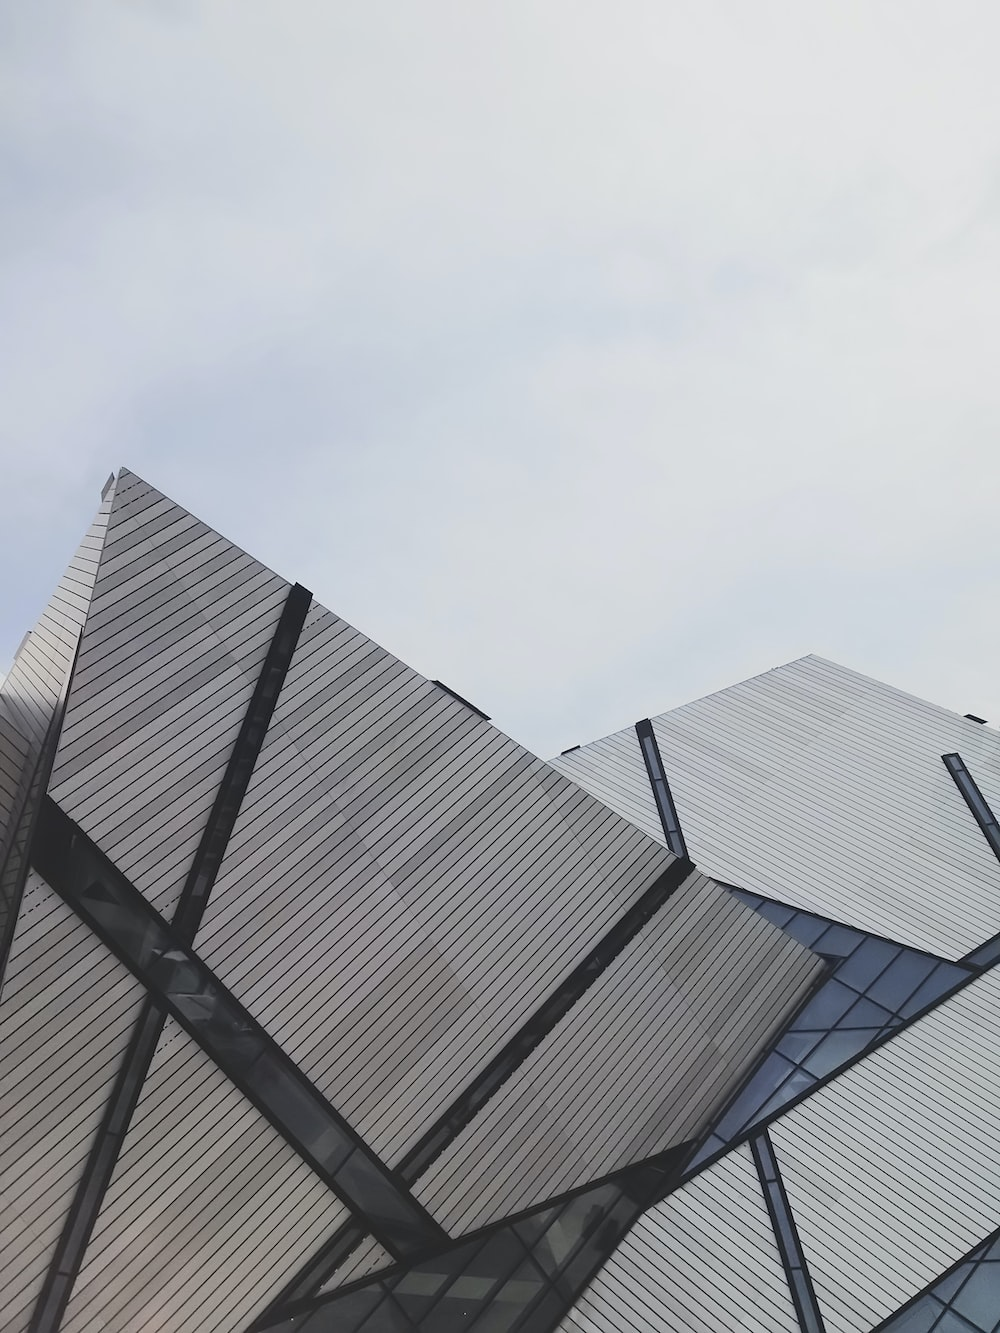 architectural photography of royal ontario museum building